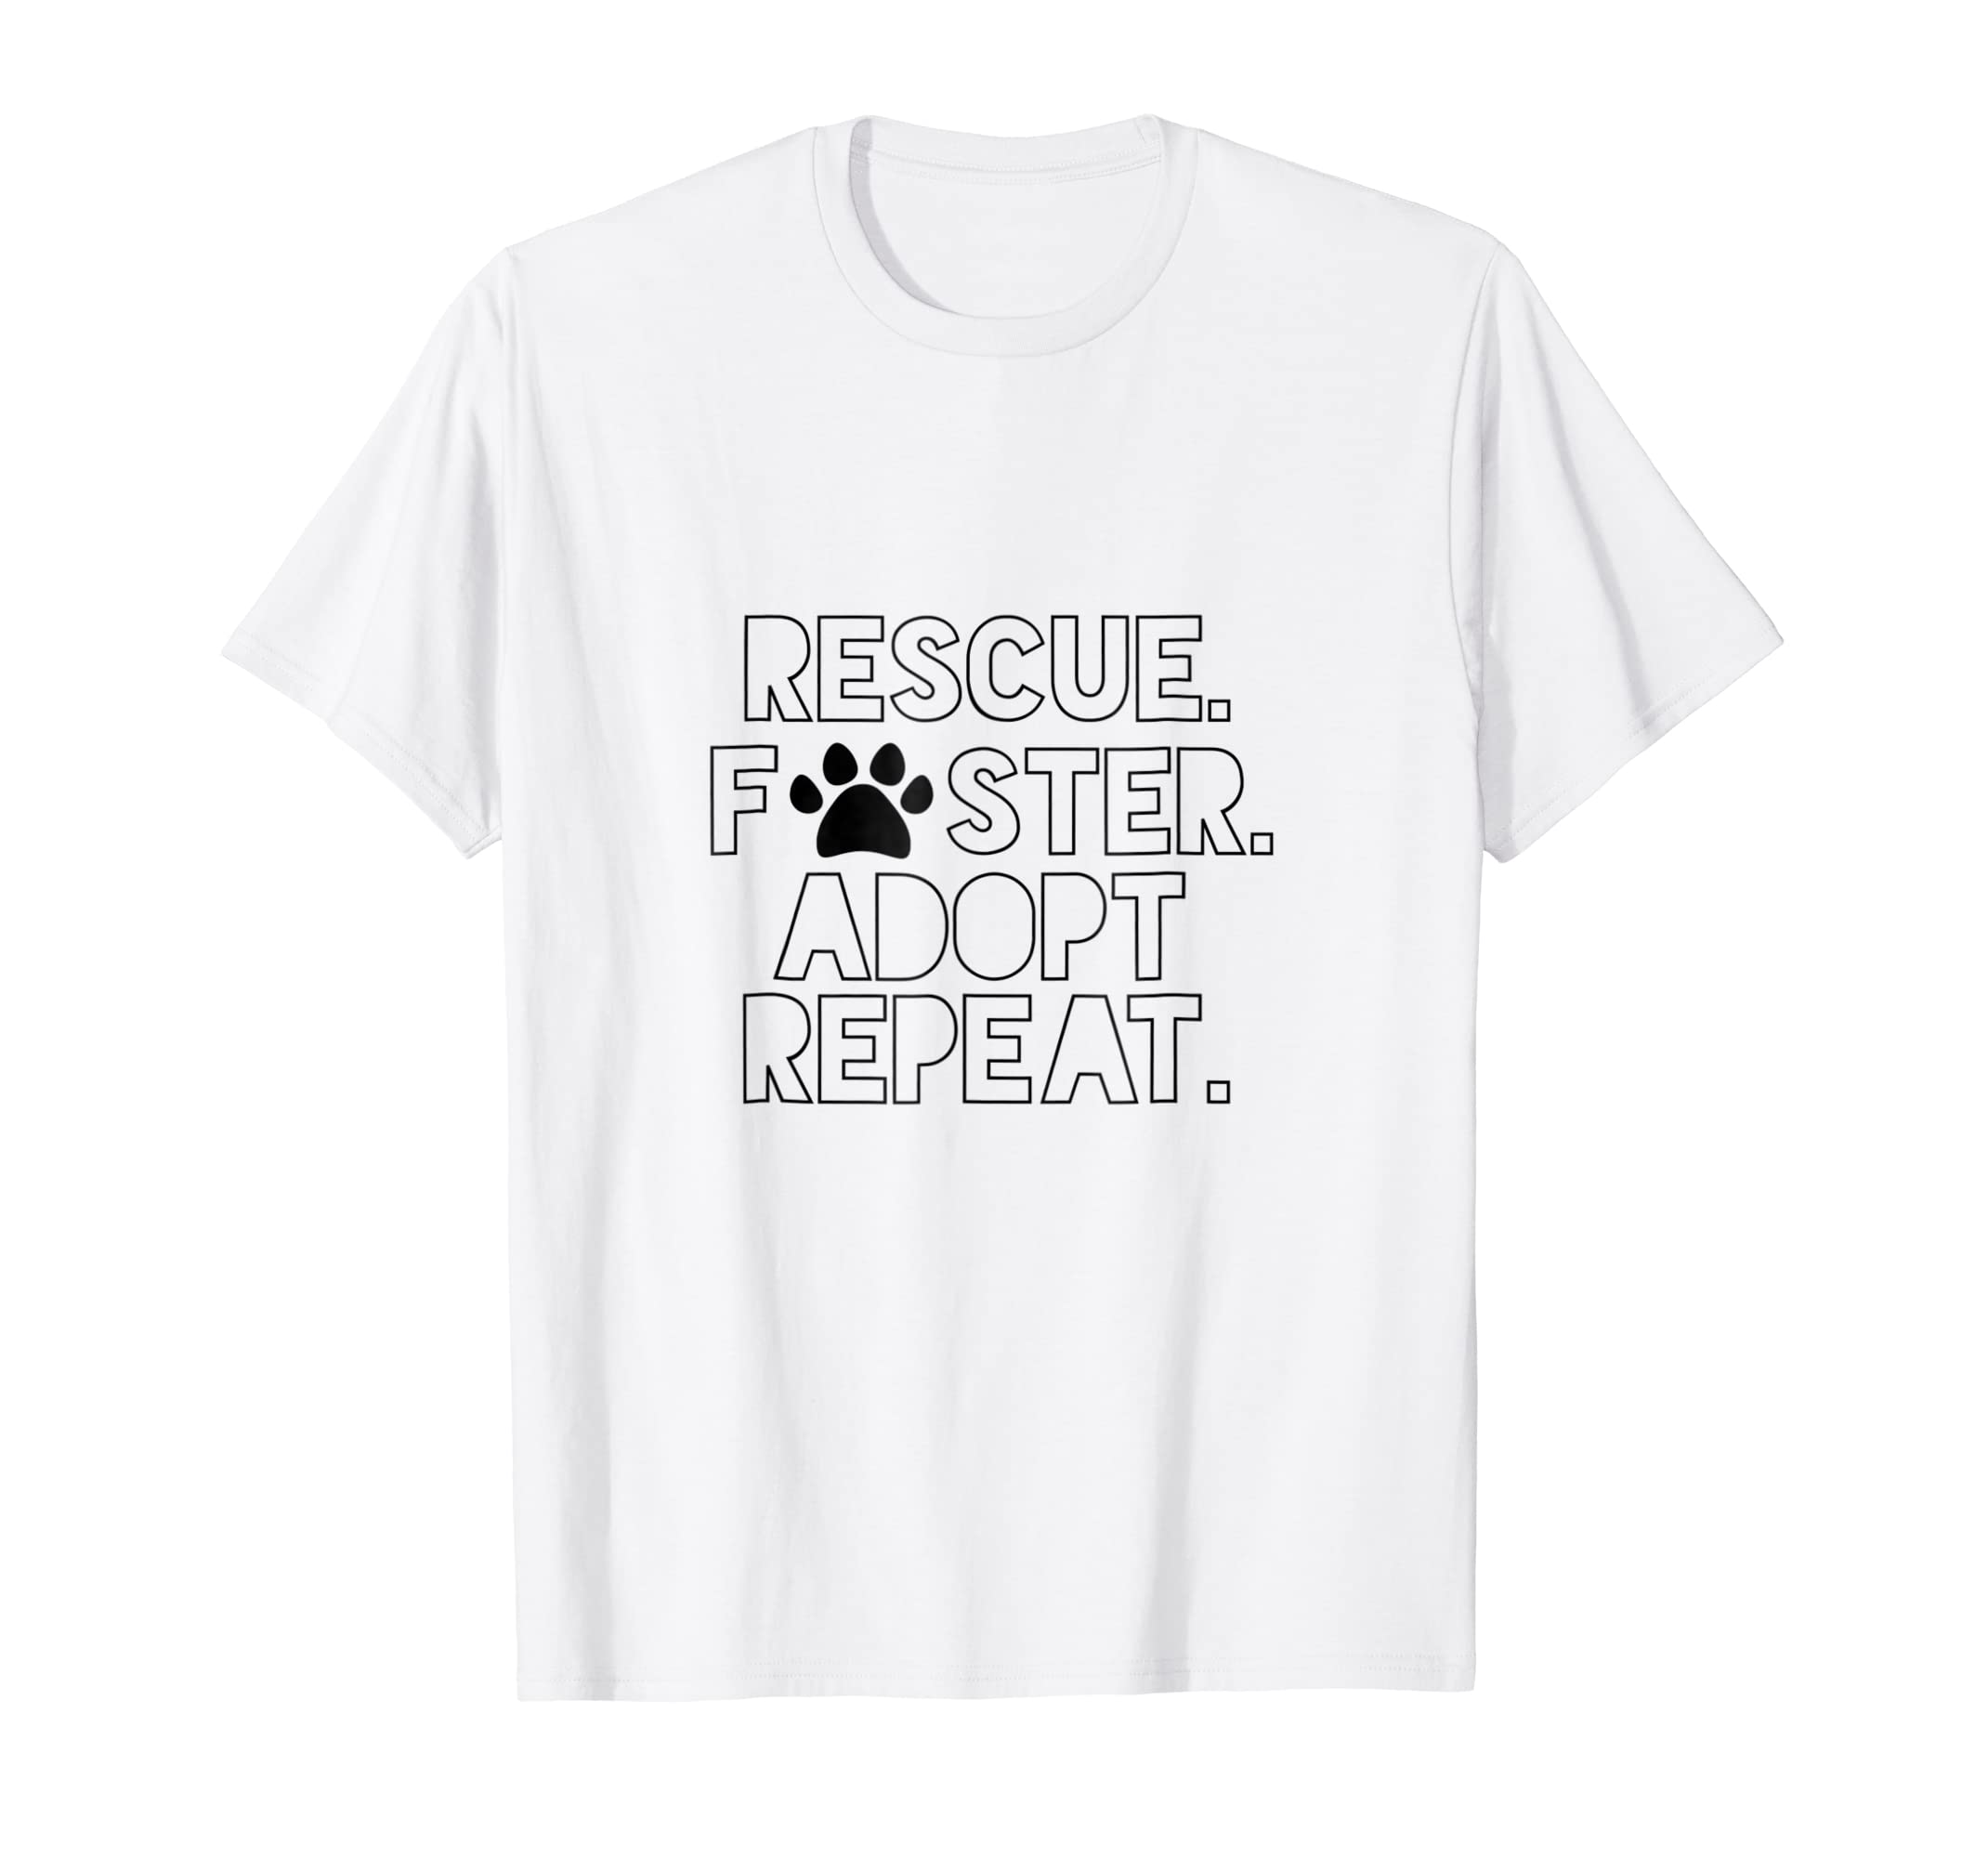 8fea2457d0a8 Amazon.com: Rescue Foster Dog Mom Adopt Don't Shop Repeat T-shirt: Clothing